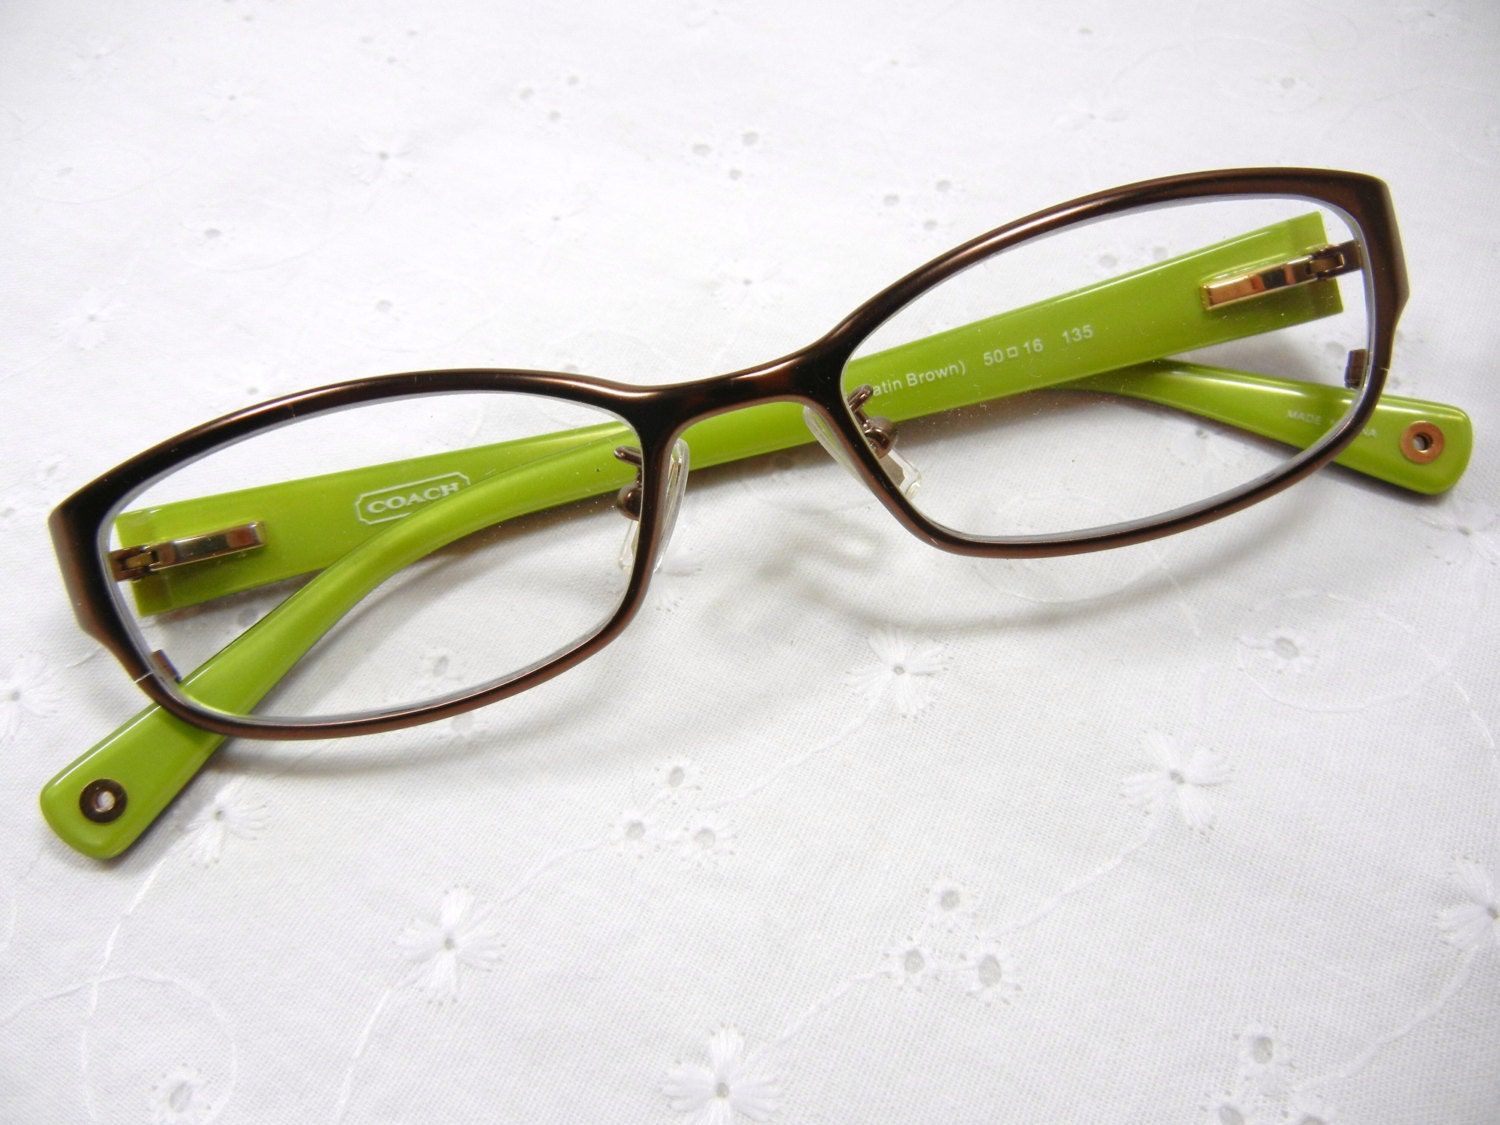 Authentic COACH Eyeglasses / Willow green / Tortoiseshell